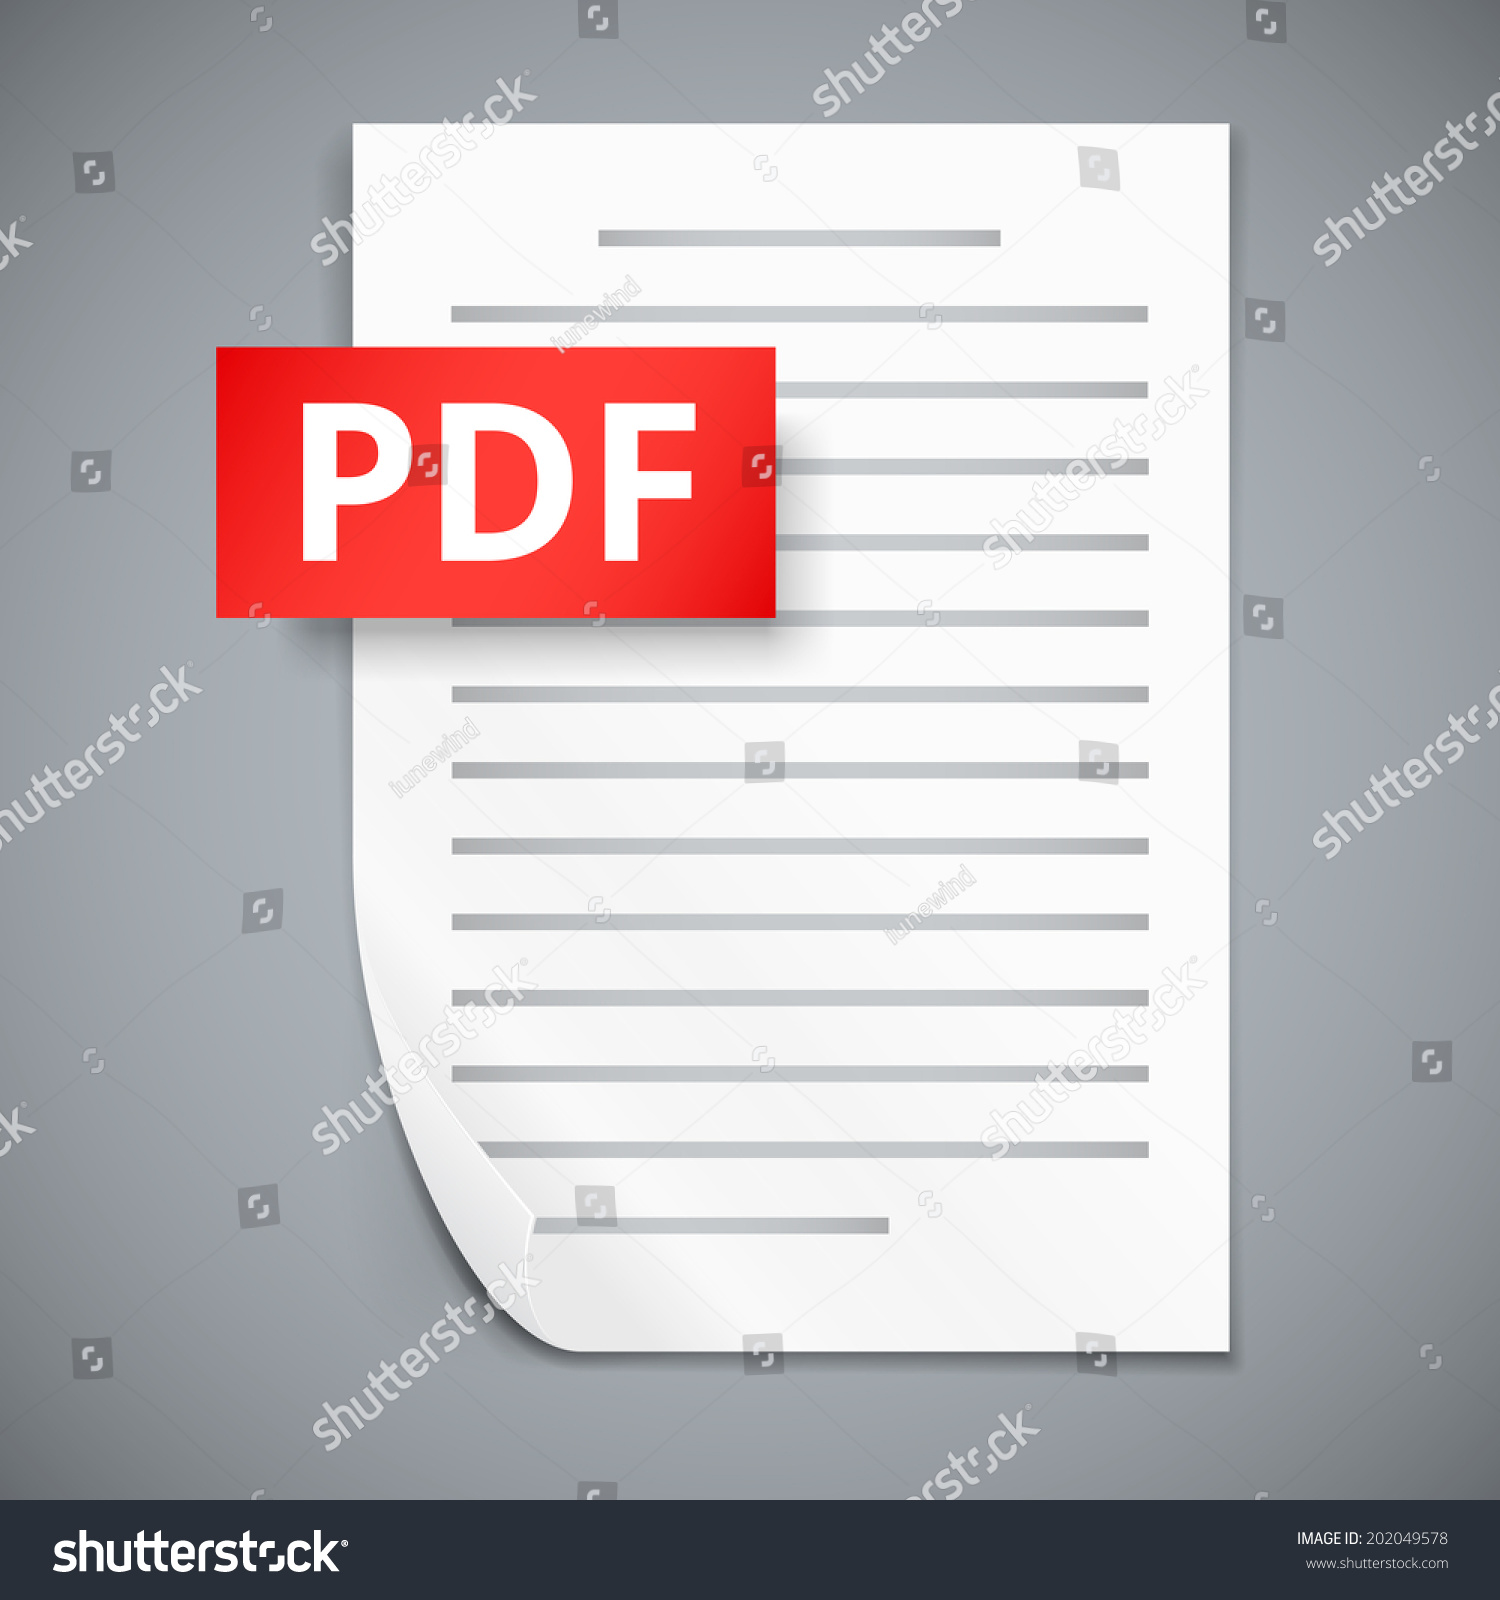 Pdf Icons Stack Paper Sheets Vector Stock Vector (Royalty Free